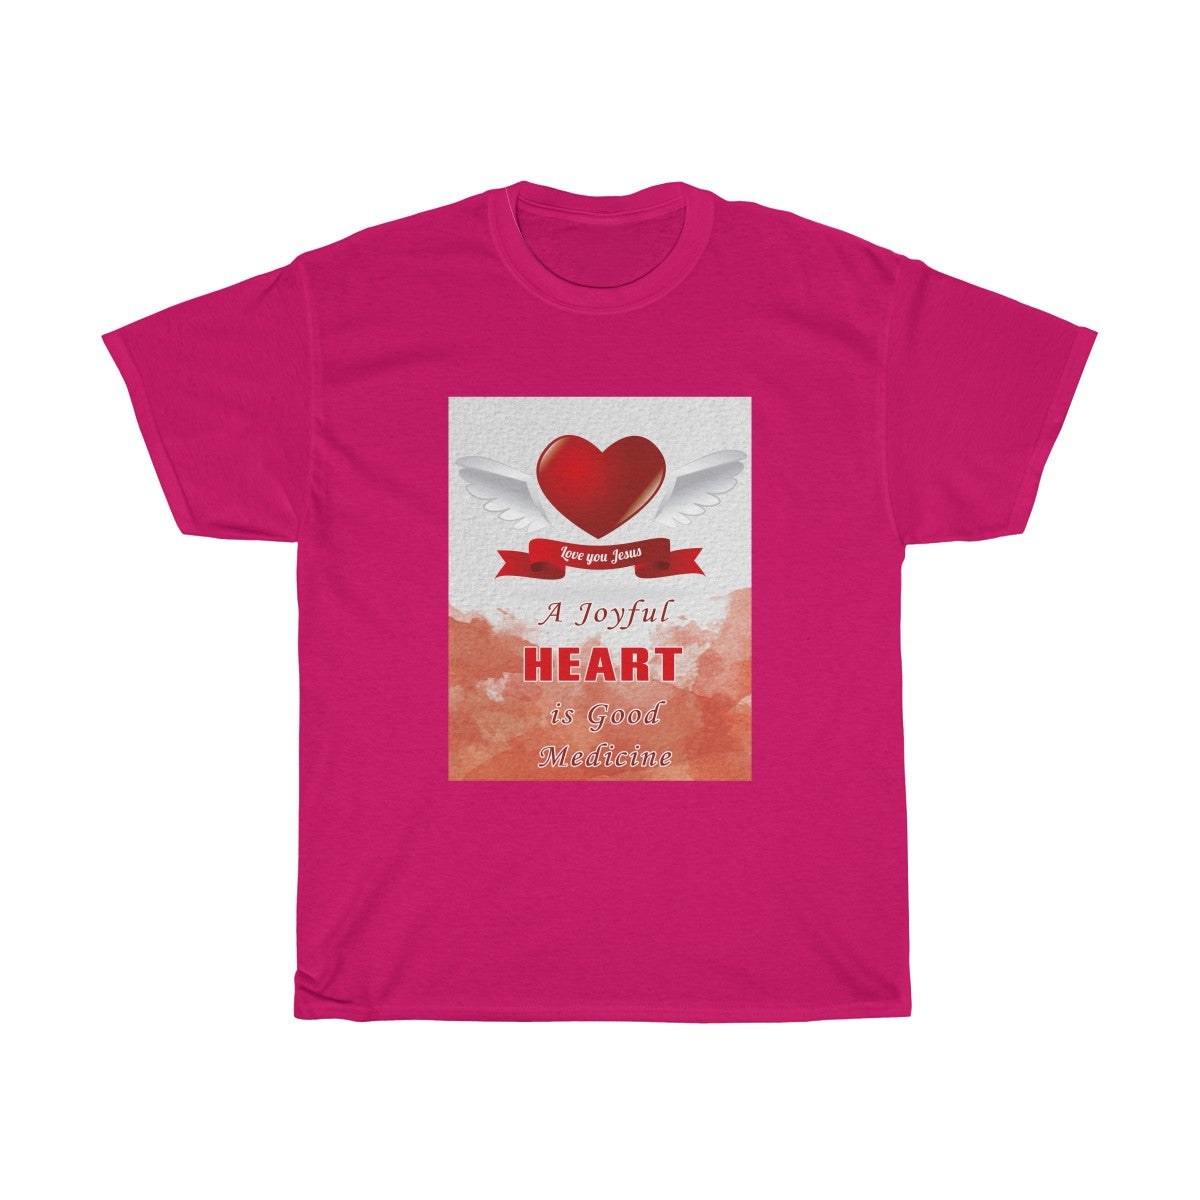 A Joyful Heart Unisex Heavy Cotton Tee